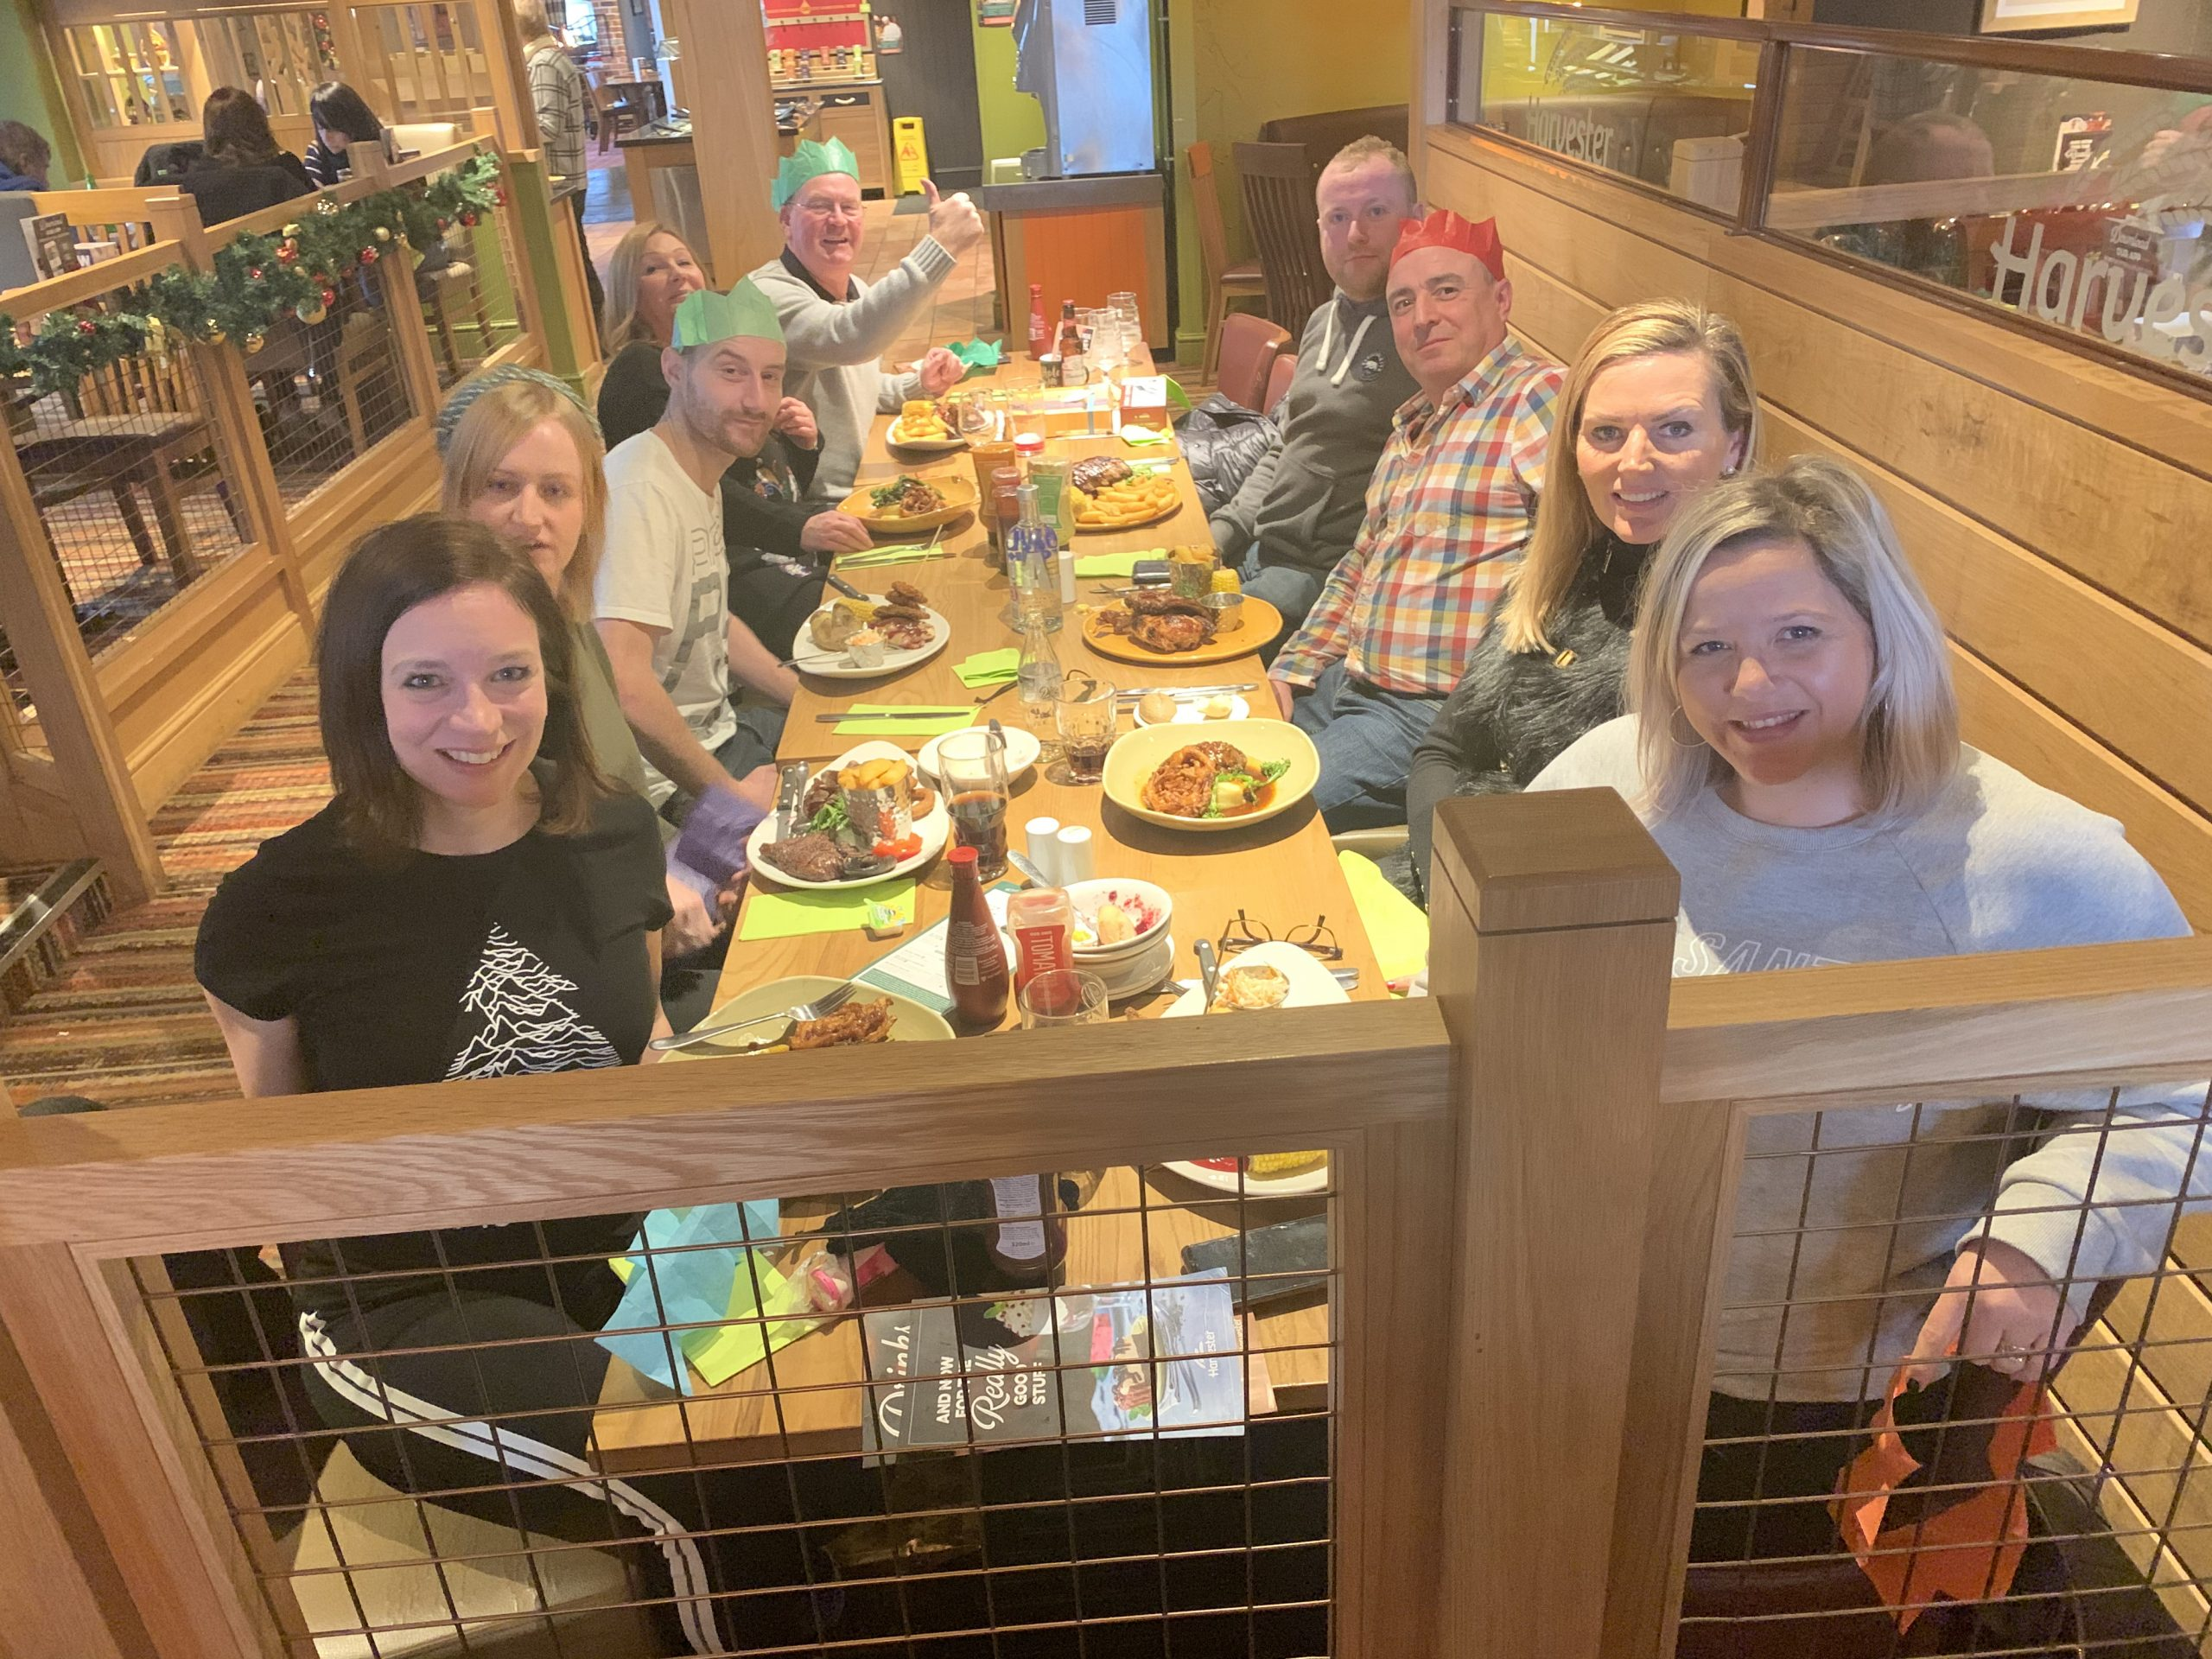 furniture hire company team christmas lunch